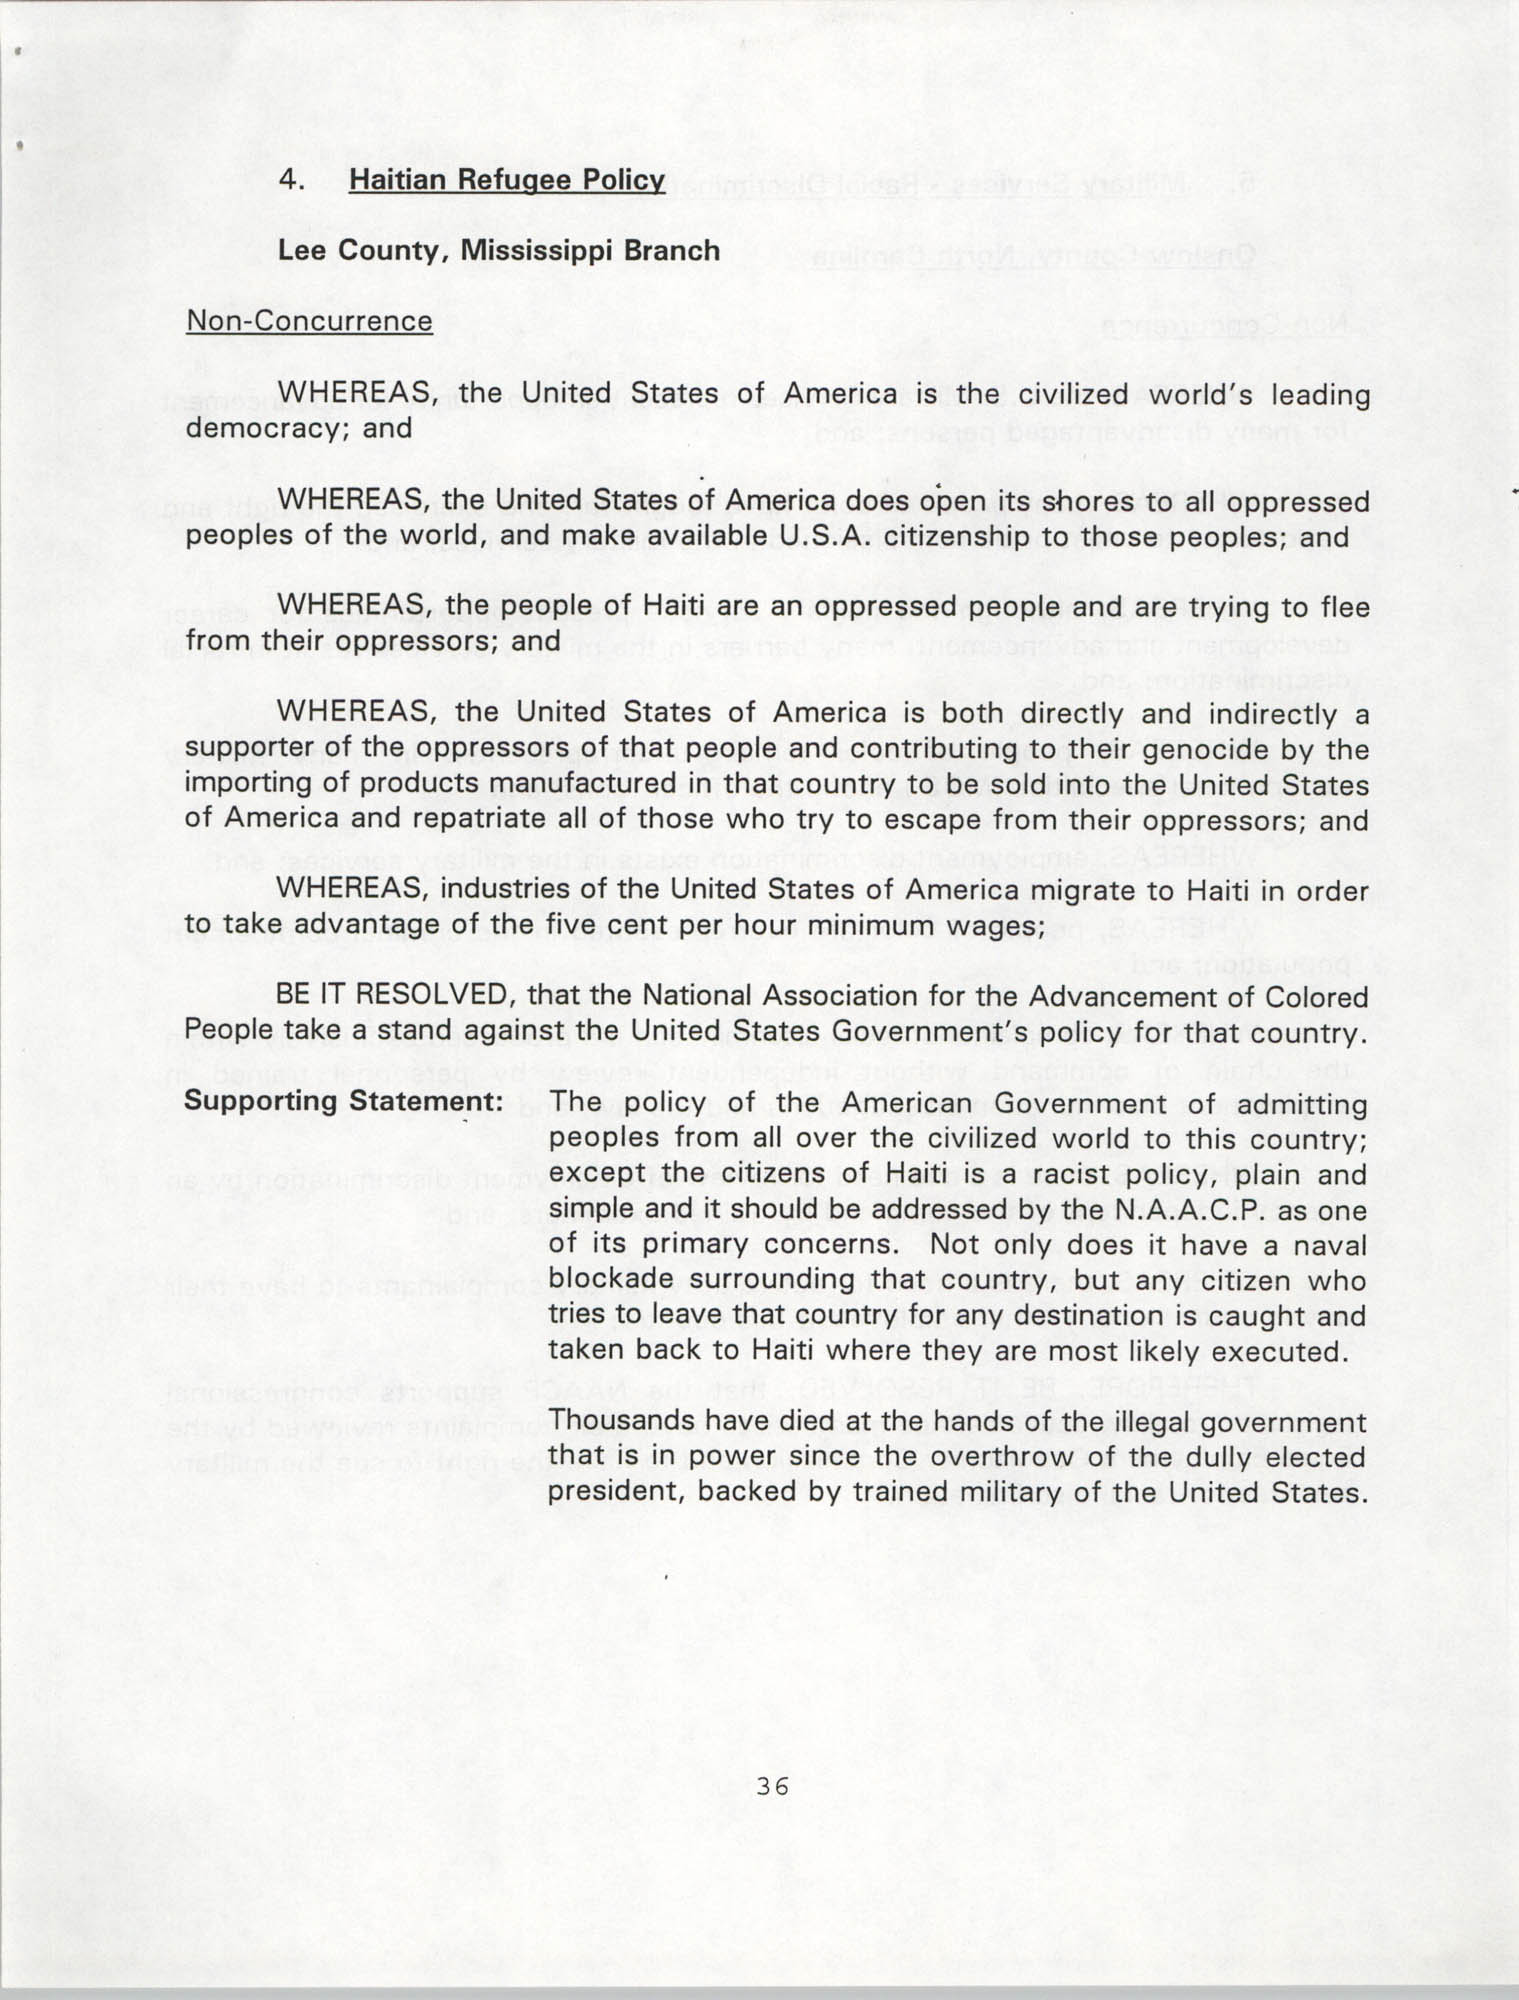 Resolutions Submitted Under Article X, Section 2 of the Constitution of the NAACP, 1994, Page 36